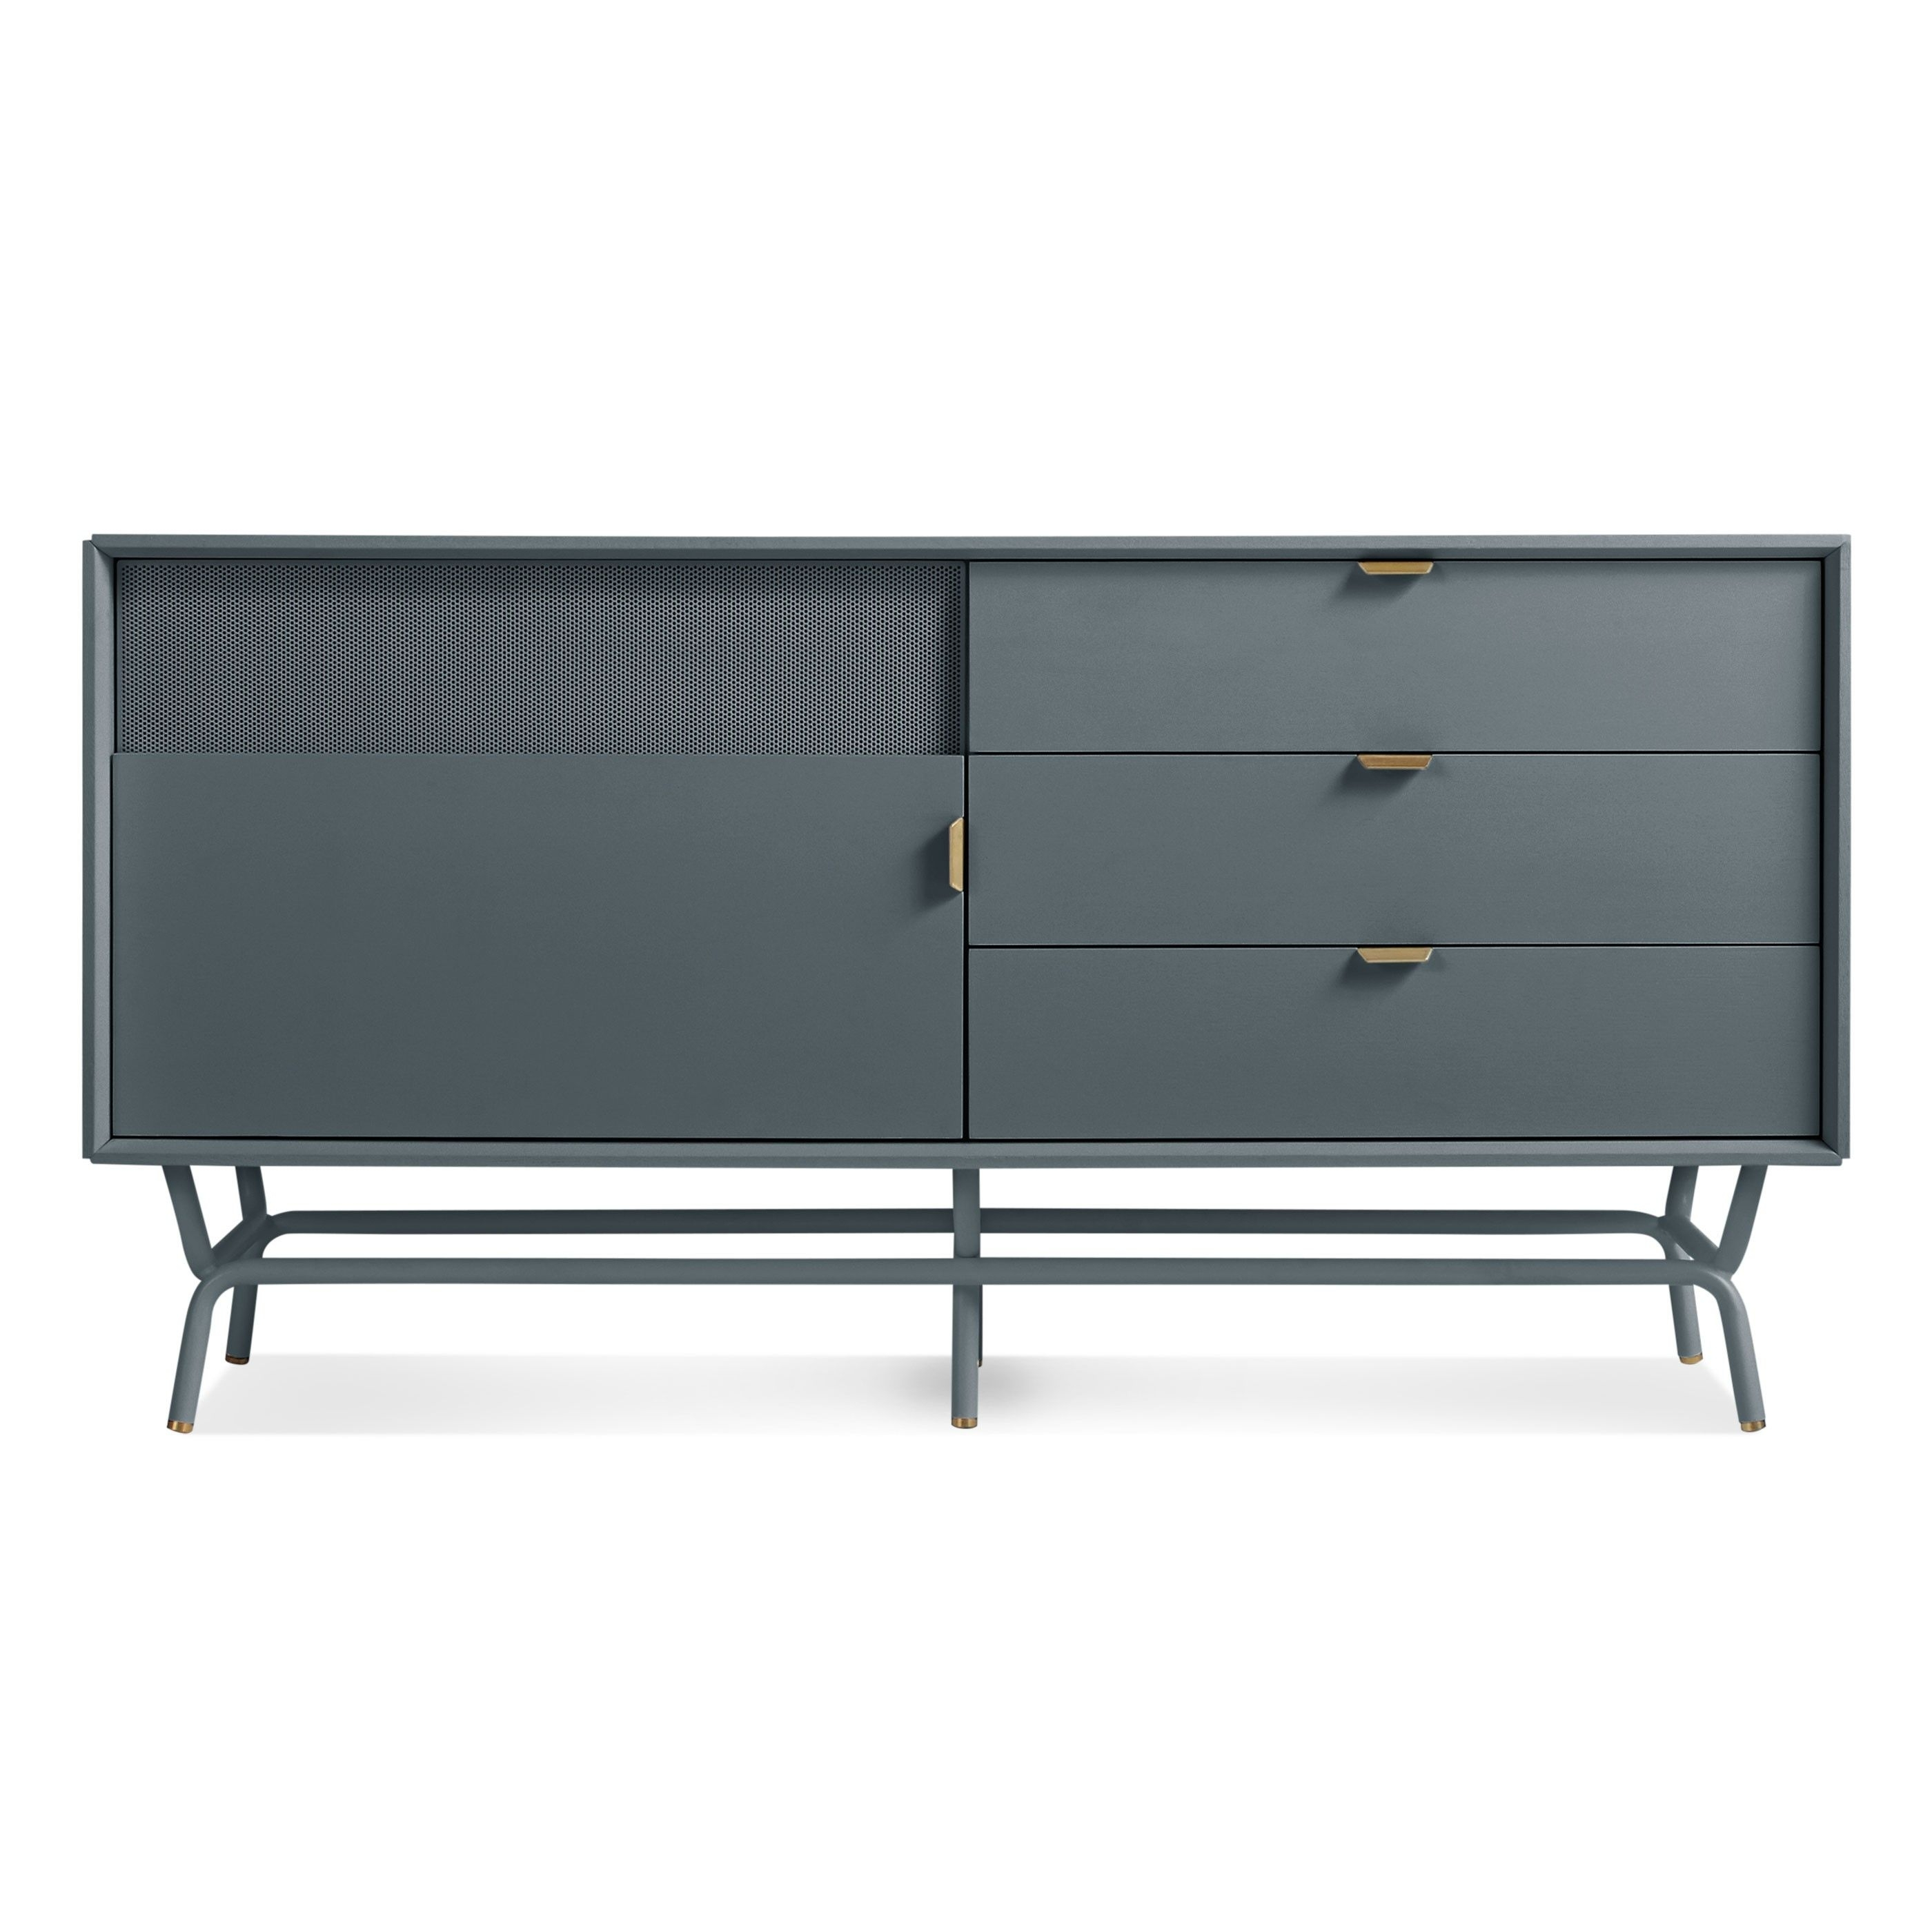 Dang 1 Door / 3 Drawer Console - Marine Blue | Sexy Furniture For in Jaxon Grey Sideboards (Image 8 of 30)